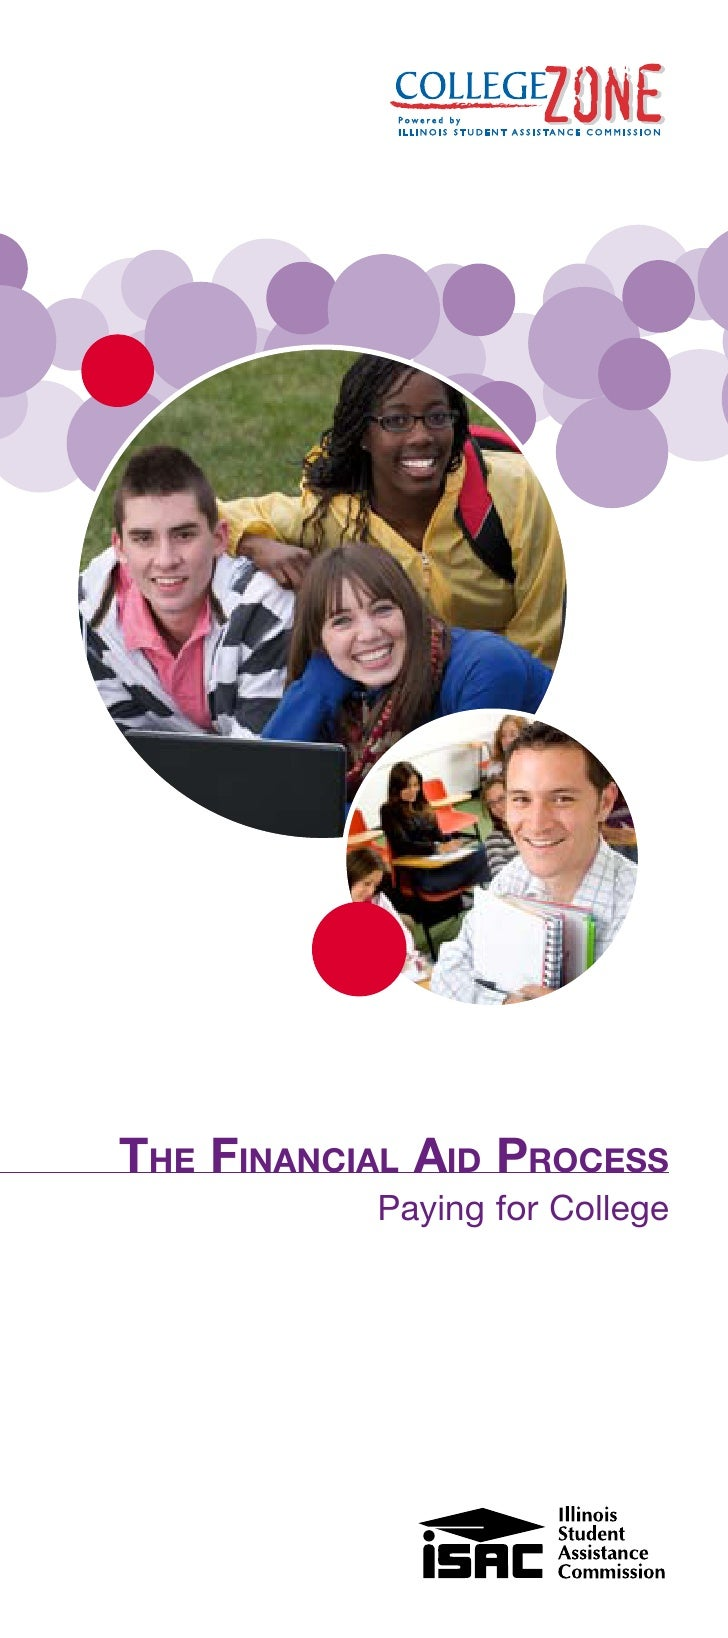 THE FINANCIAL AID PROCESS            Paying for College